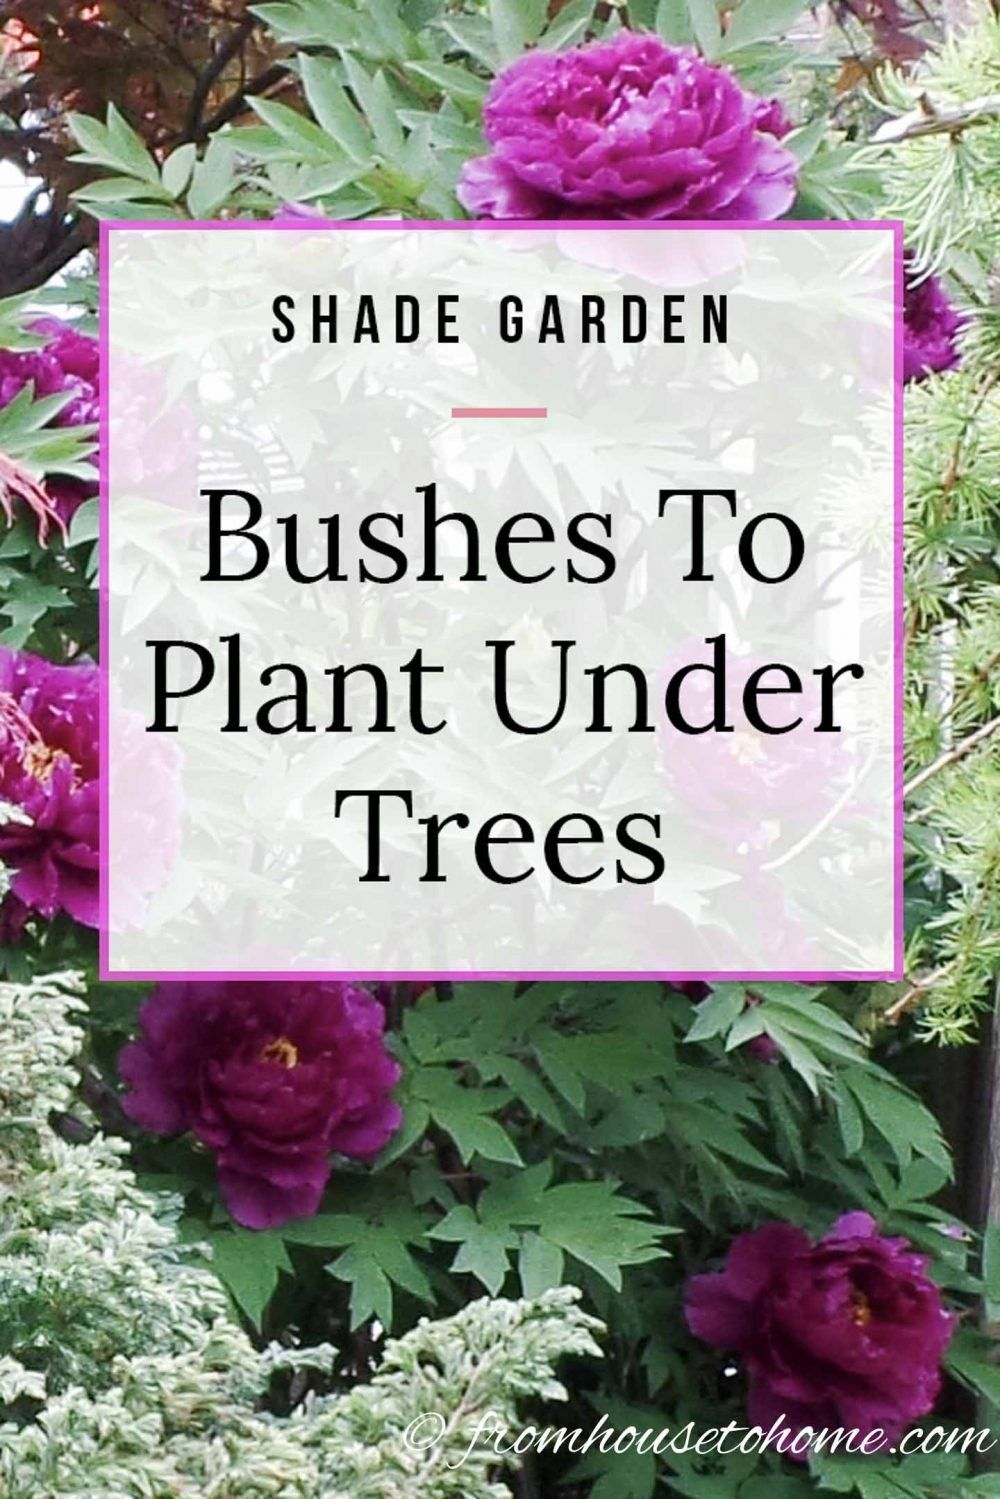 Find out which bushes to plant under trees in the shade garden in your backyard or front yard. These shrubs with beautiful flowers will help to brighten up your yard. #fromhousetohome #shrubs #gardenideas #shadegarden   #shadelovingshrubs #shadeplants